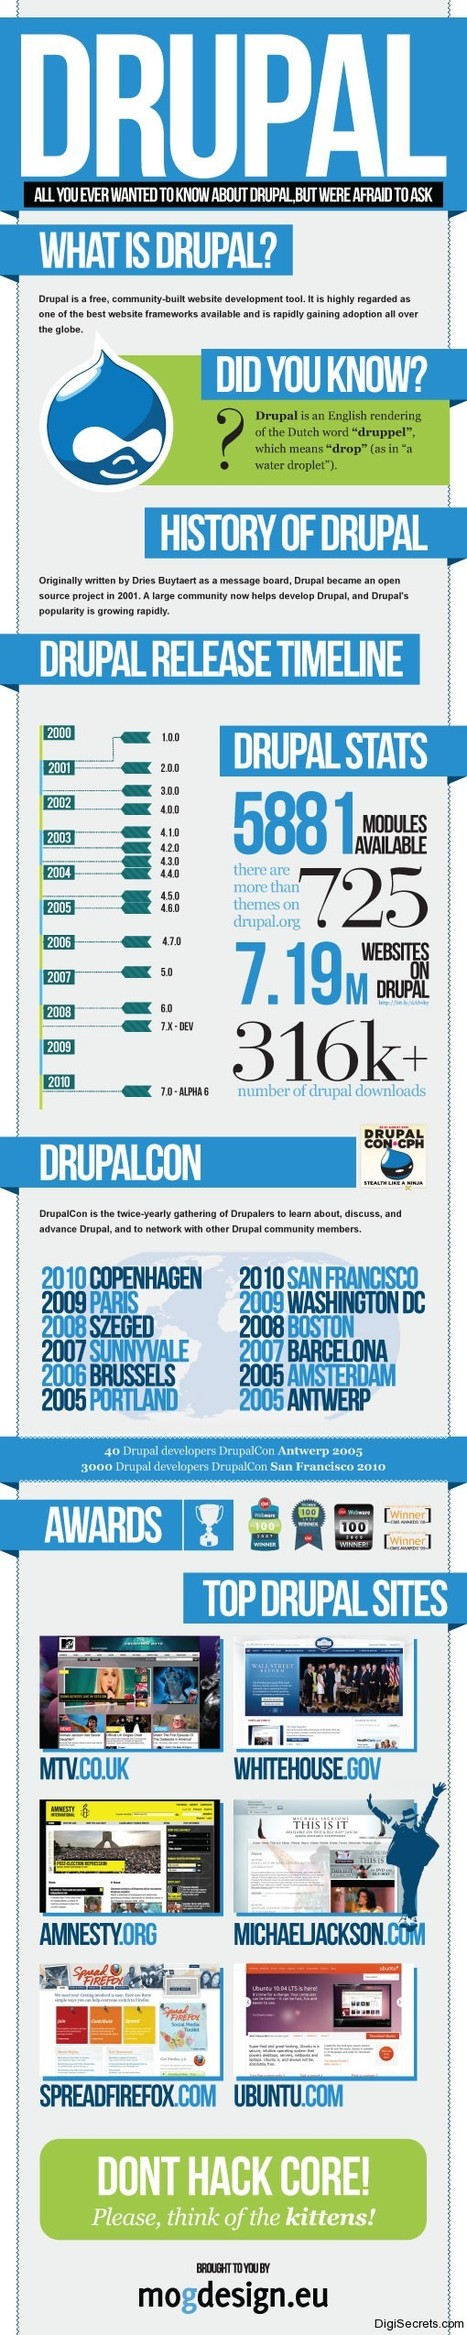 Its All About Drupal Platform & Its Popularity | Infographic | Scoop.it